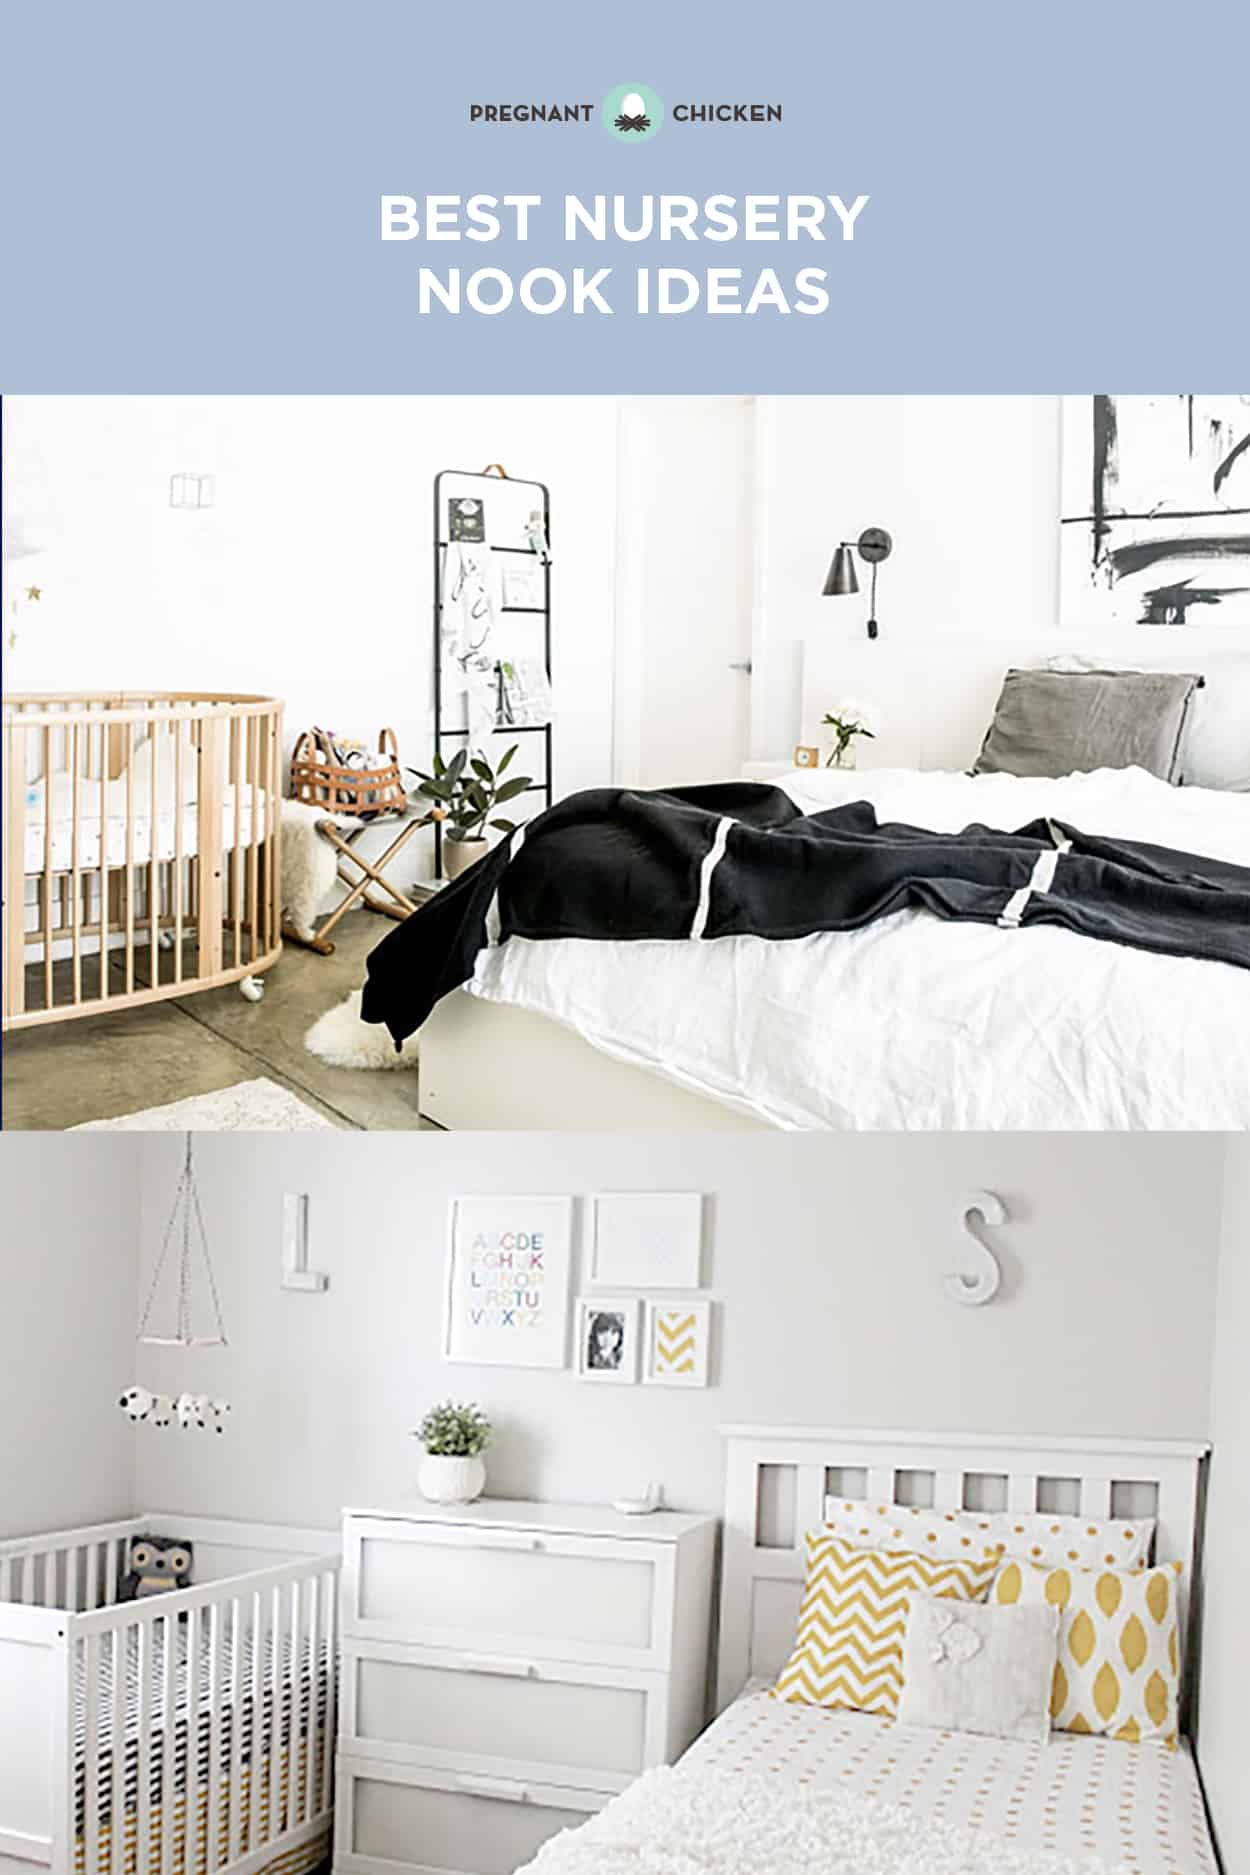 Best Nursery Nook Ideas - Creating Space for Baby in a Master Bedroom